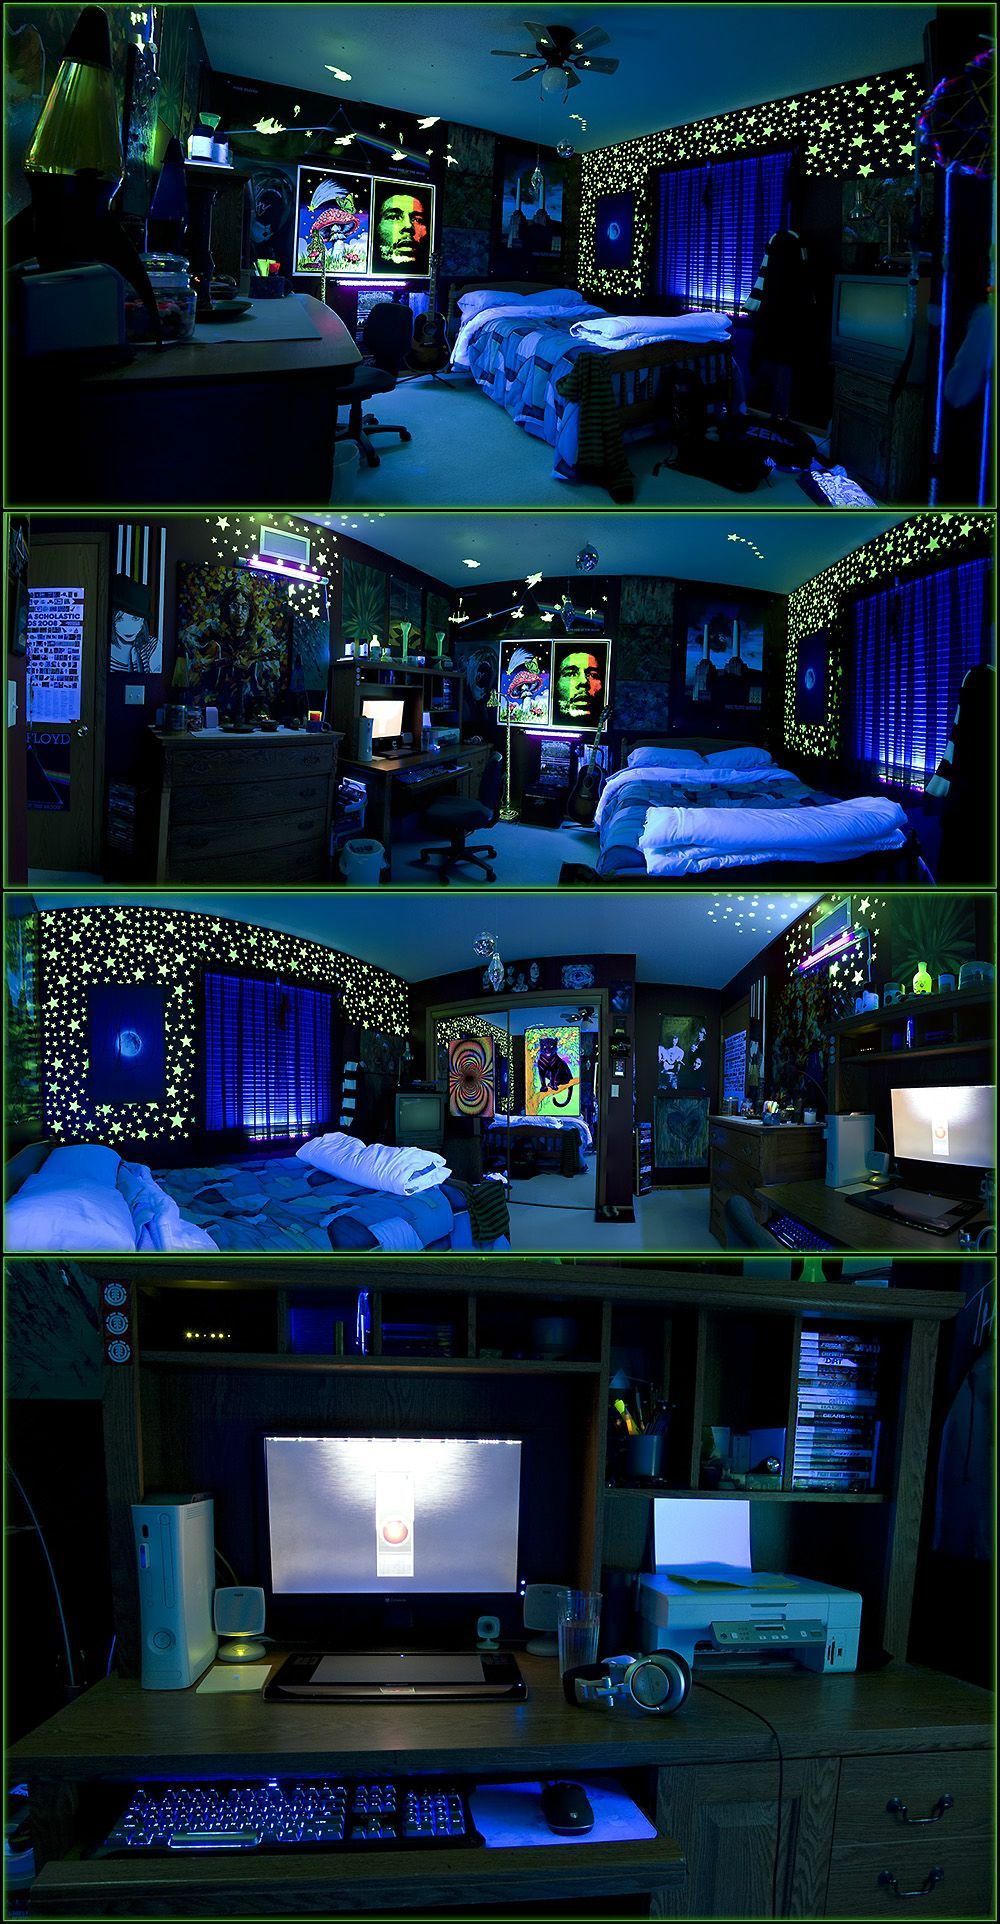 10 Amazing Black And Blue Bedroom Ideas black blue lit cool stoner room cb99c2b7d9a0e280a2e2978be299a5 for the home e299a5e2978be280a2d9a0c2b7cb99 in 2020